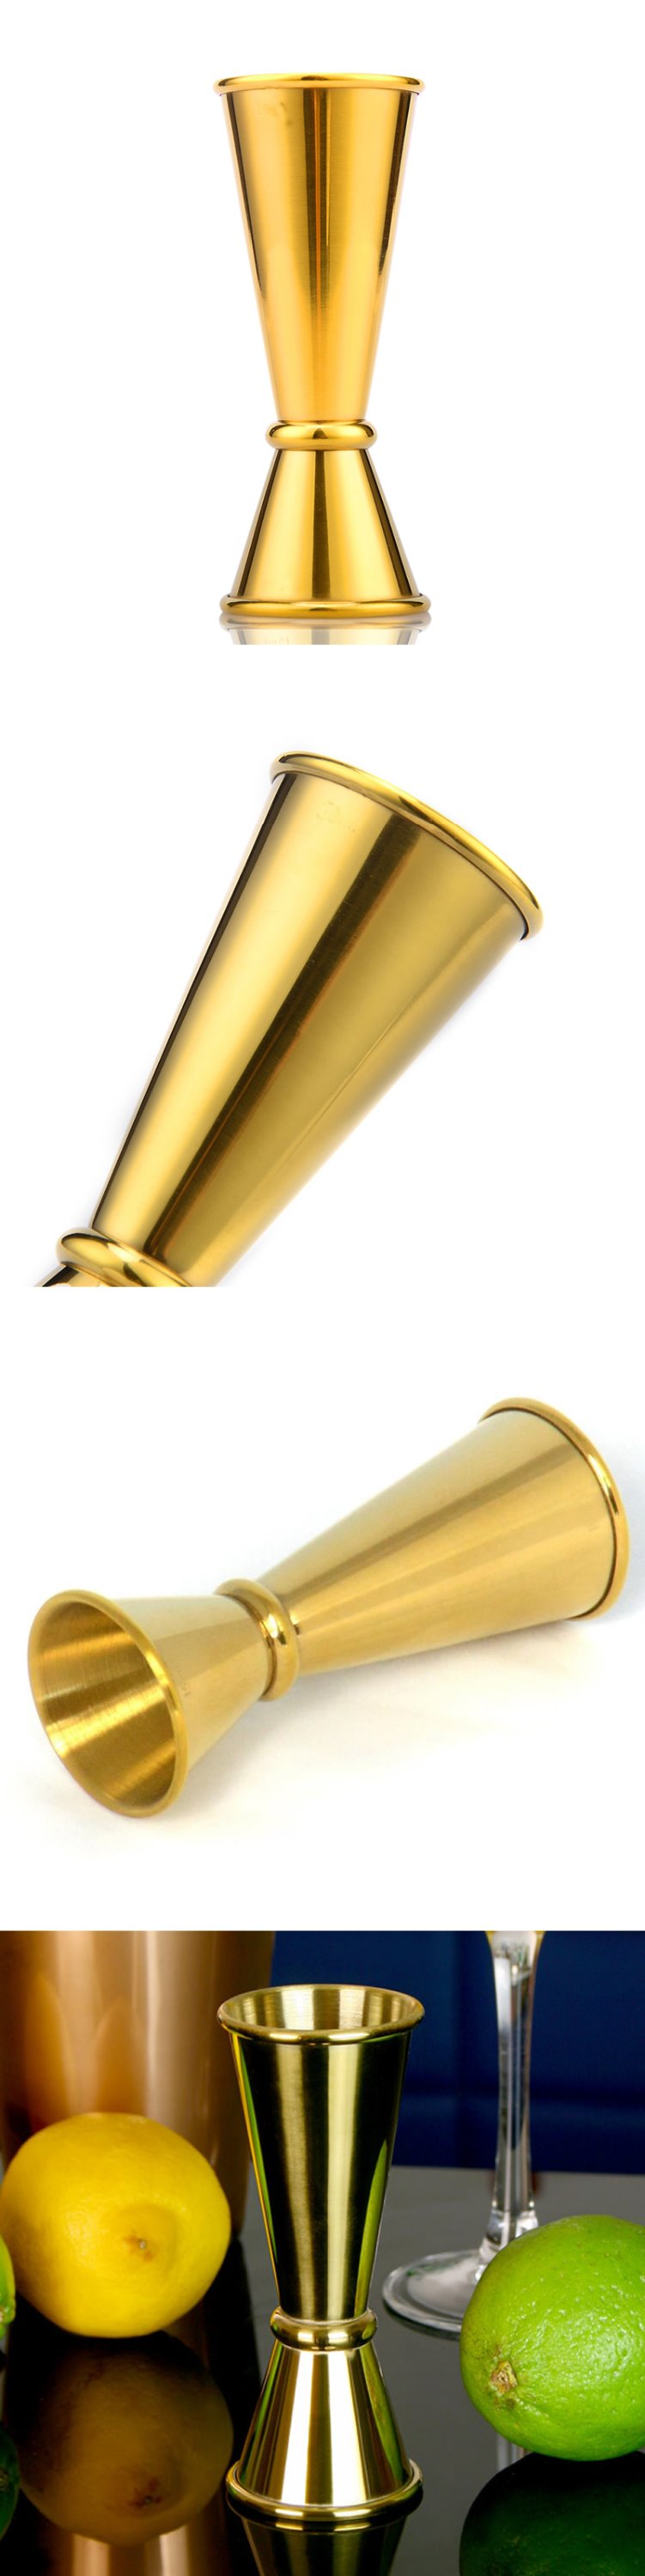 High quality stainless steel golden 1-2oz double jigger